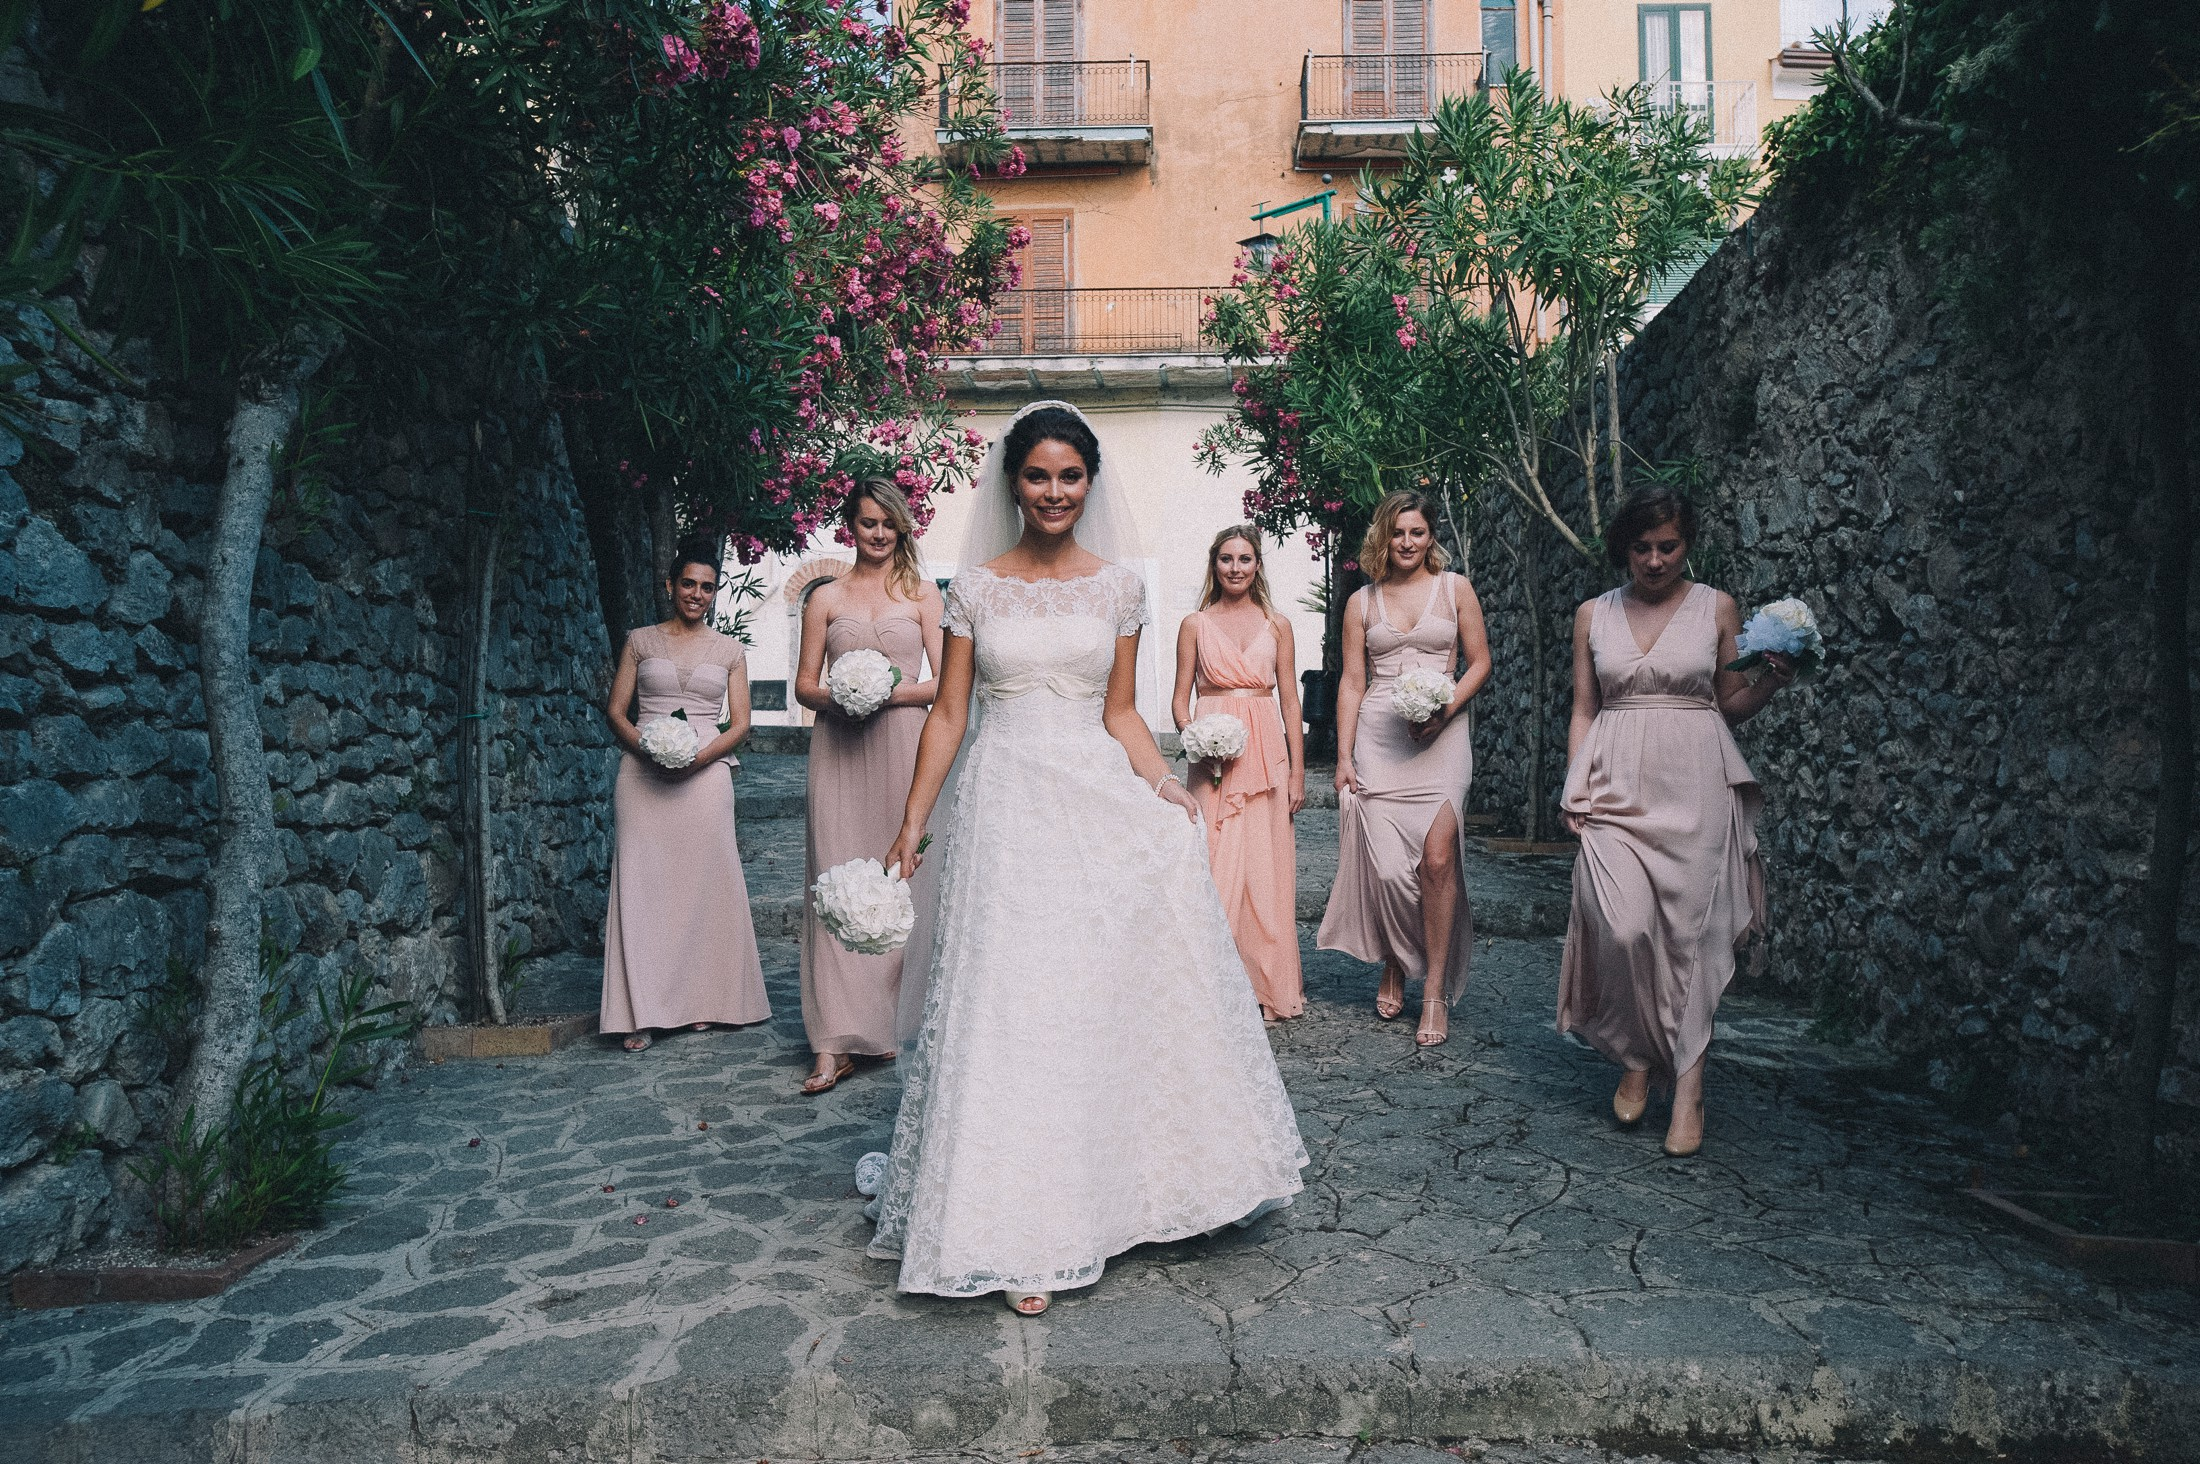 the bride walks with her bridesmaids to the wedding ceremony